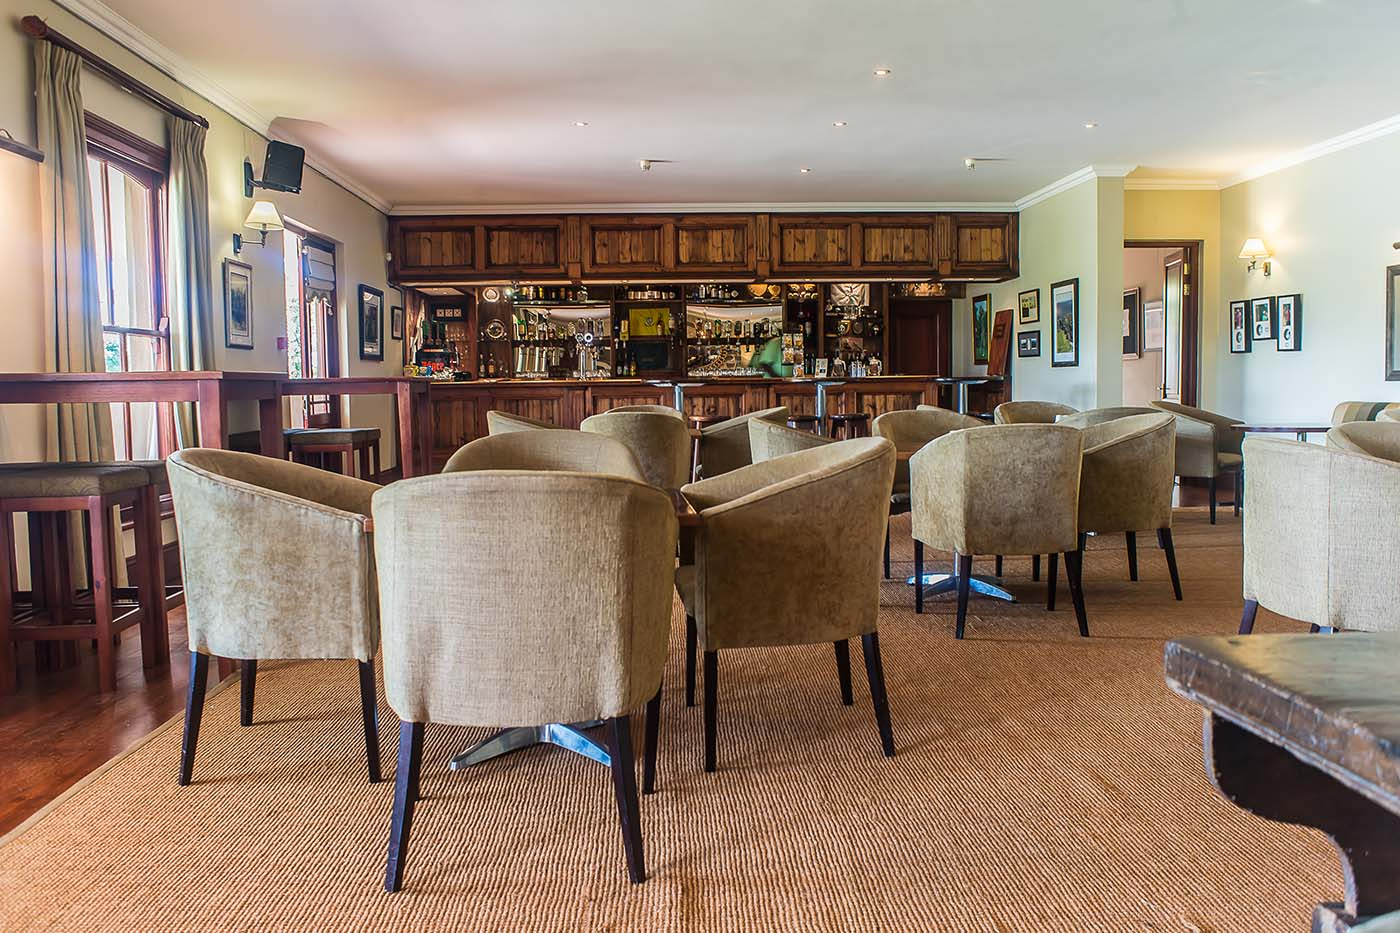 gowrie-club-house-gallery-golf-lodge-property-midlands-development-kzn-country-lifestyle